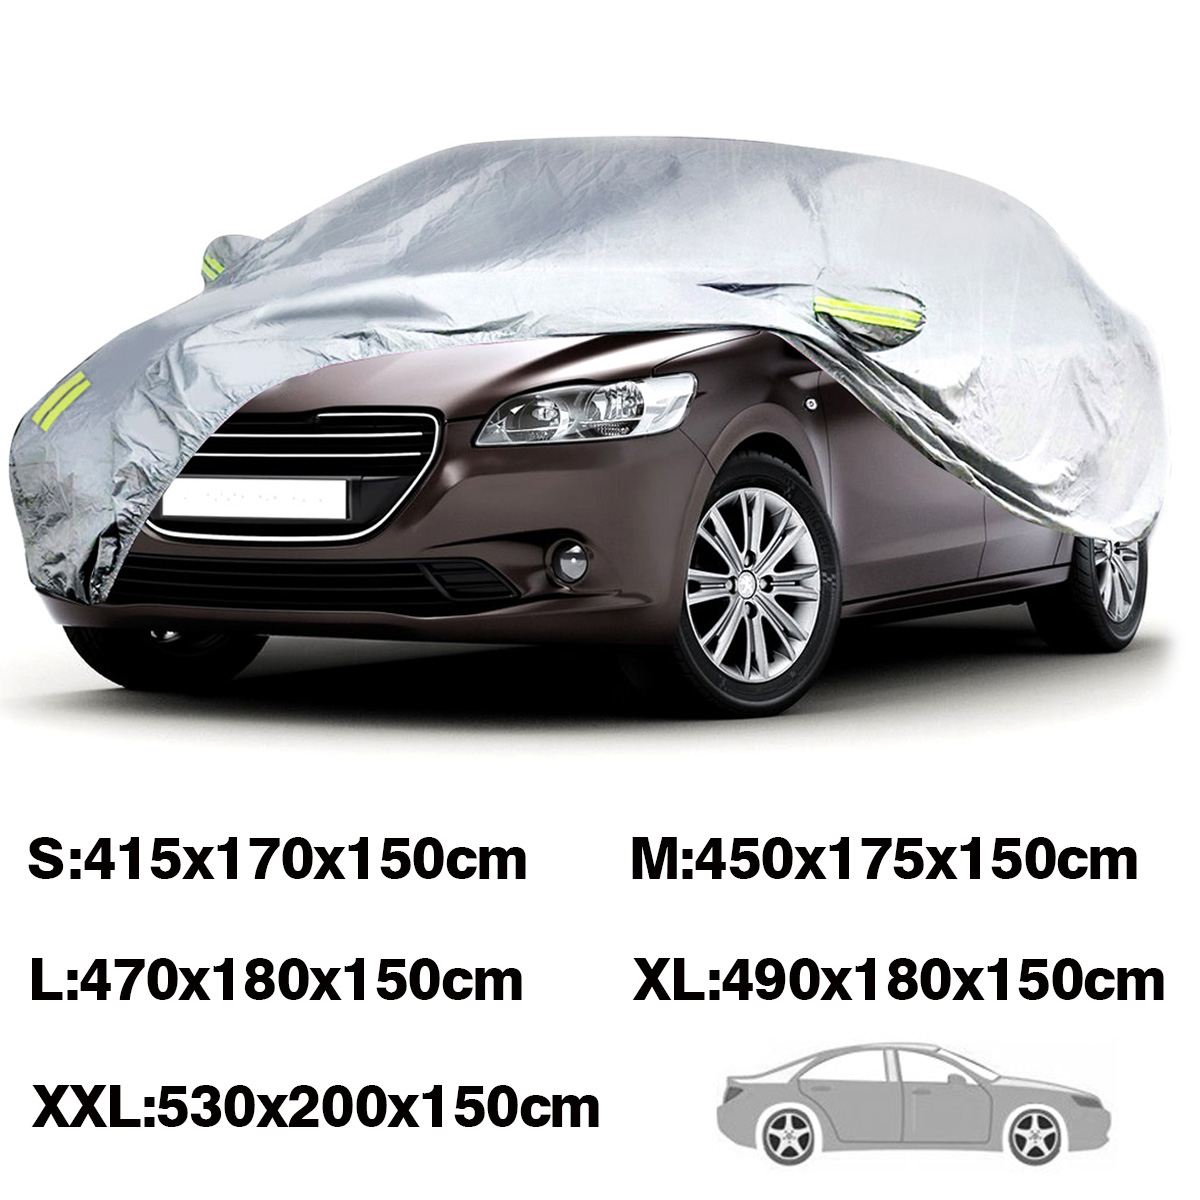 For SUV Sedan Pickup Truck Full Car Covers Waterproof Anti Dust Snow Resistant Sun UV Outdoor S-XXL Silver Auto Case Covers